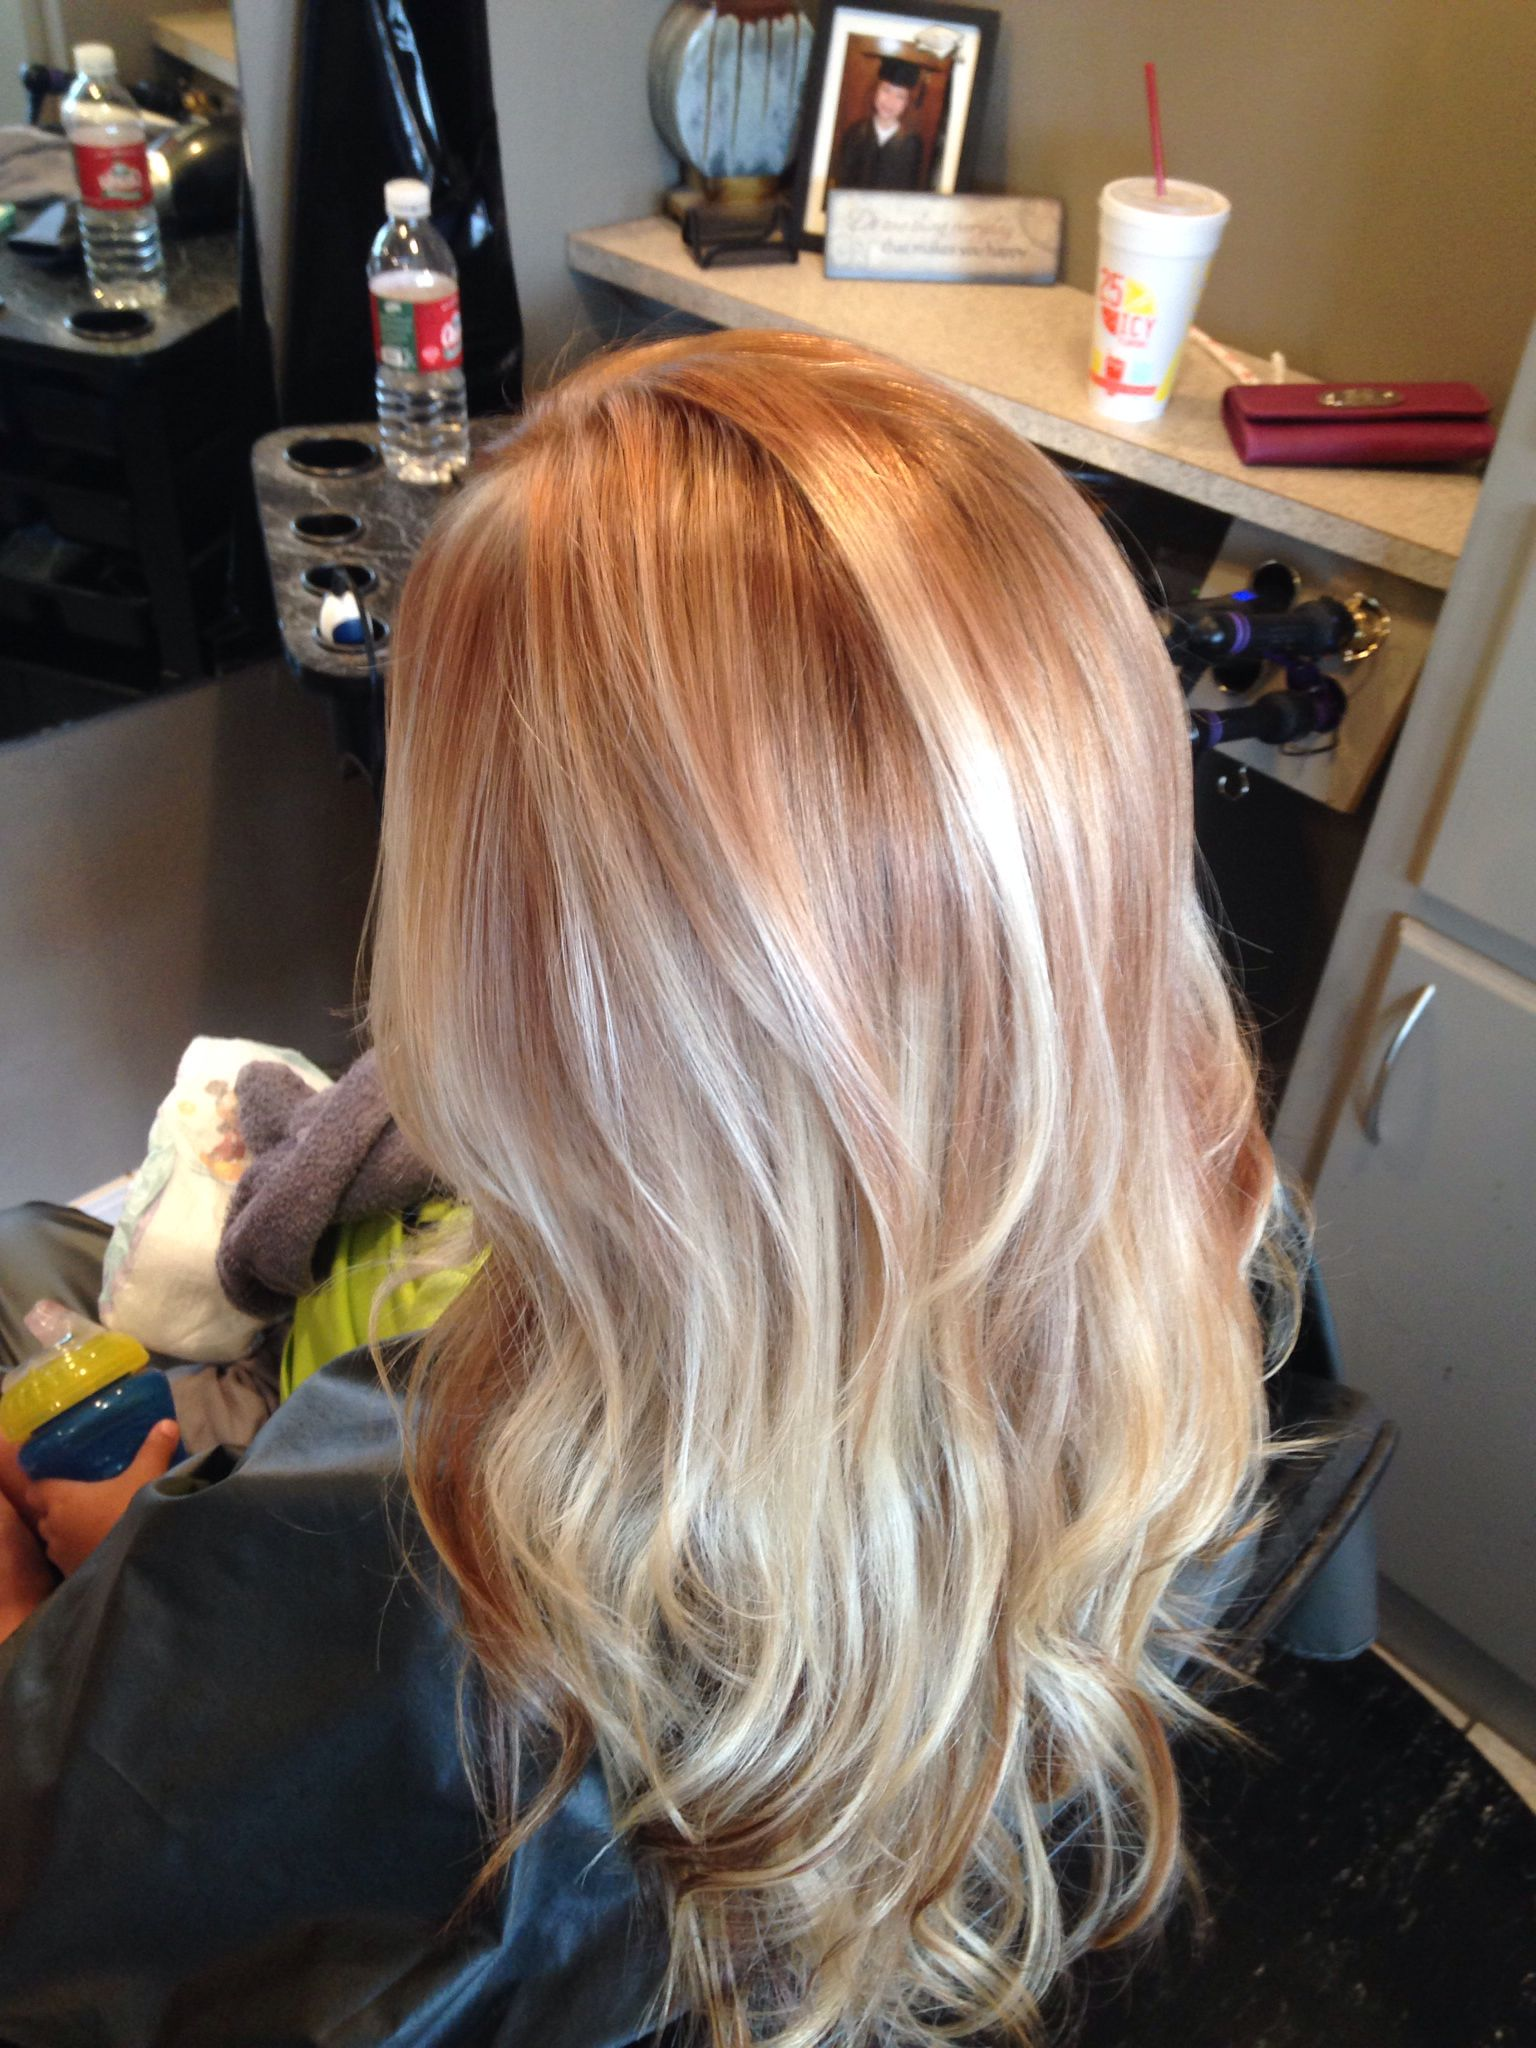 Top Selections of Options for Blonde Highlights pics